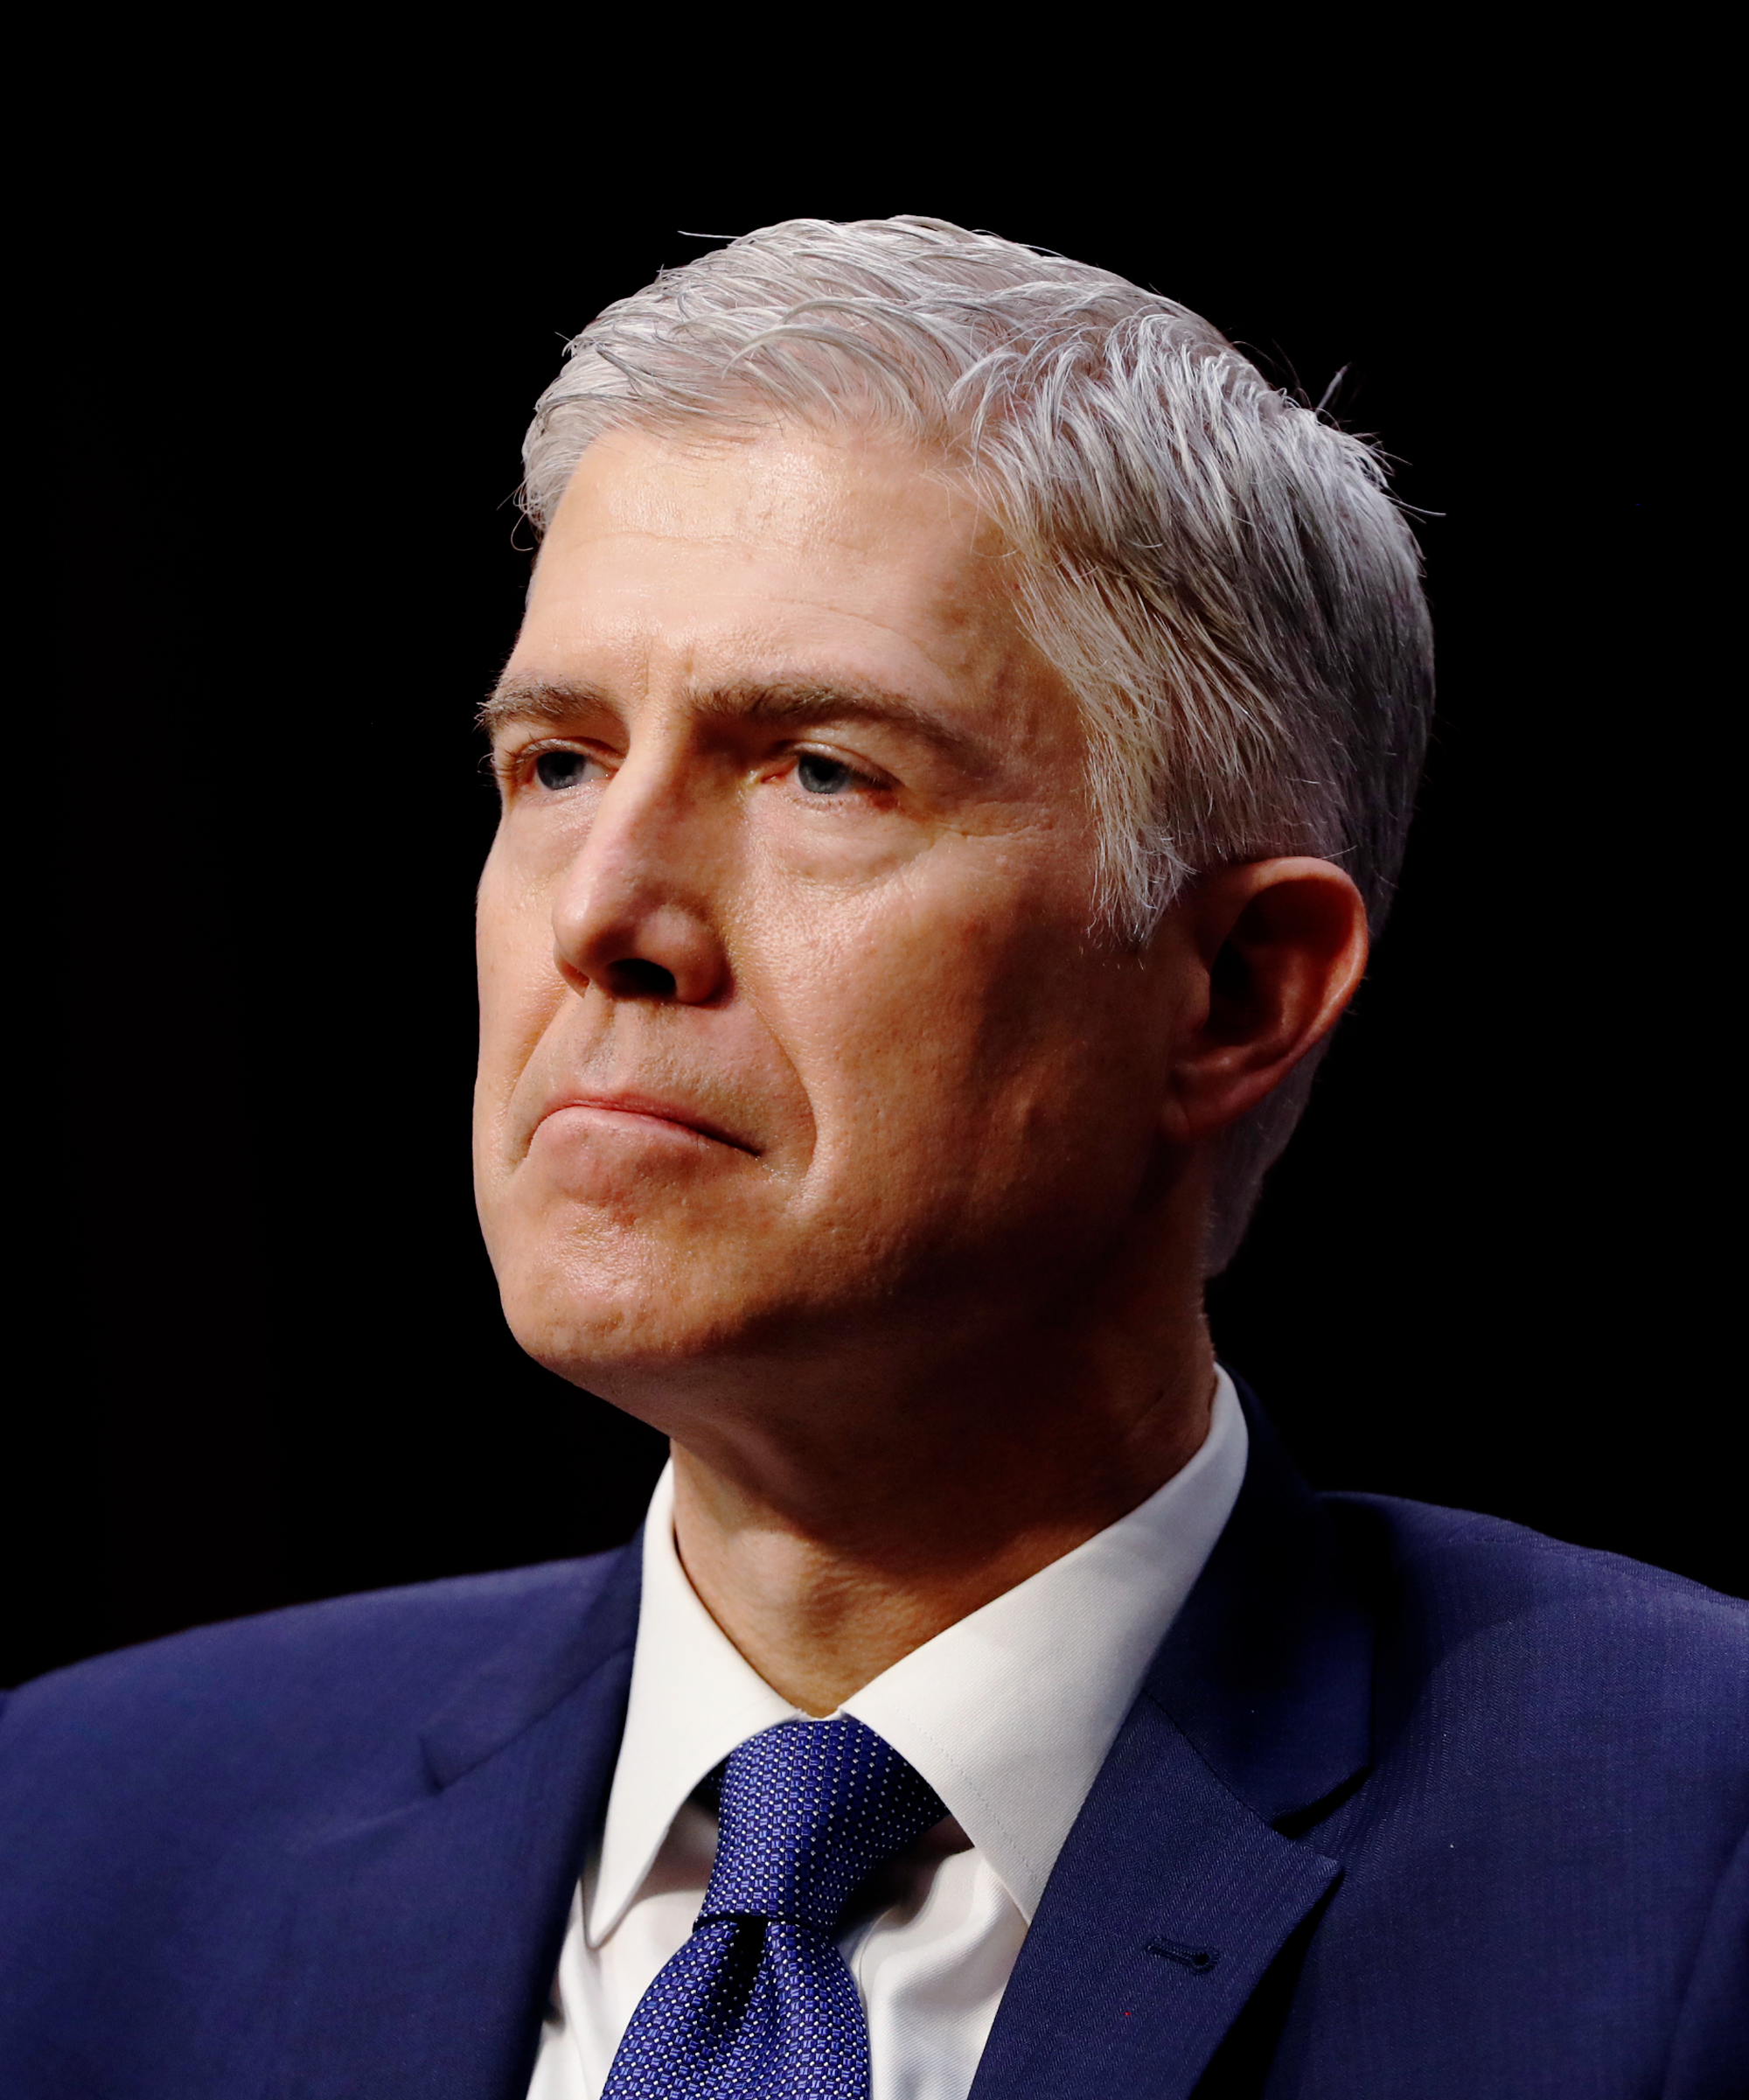 NEW INFORMATION: Gorsuch confirmed; Senate approves Trump nominee, 54-45